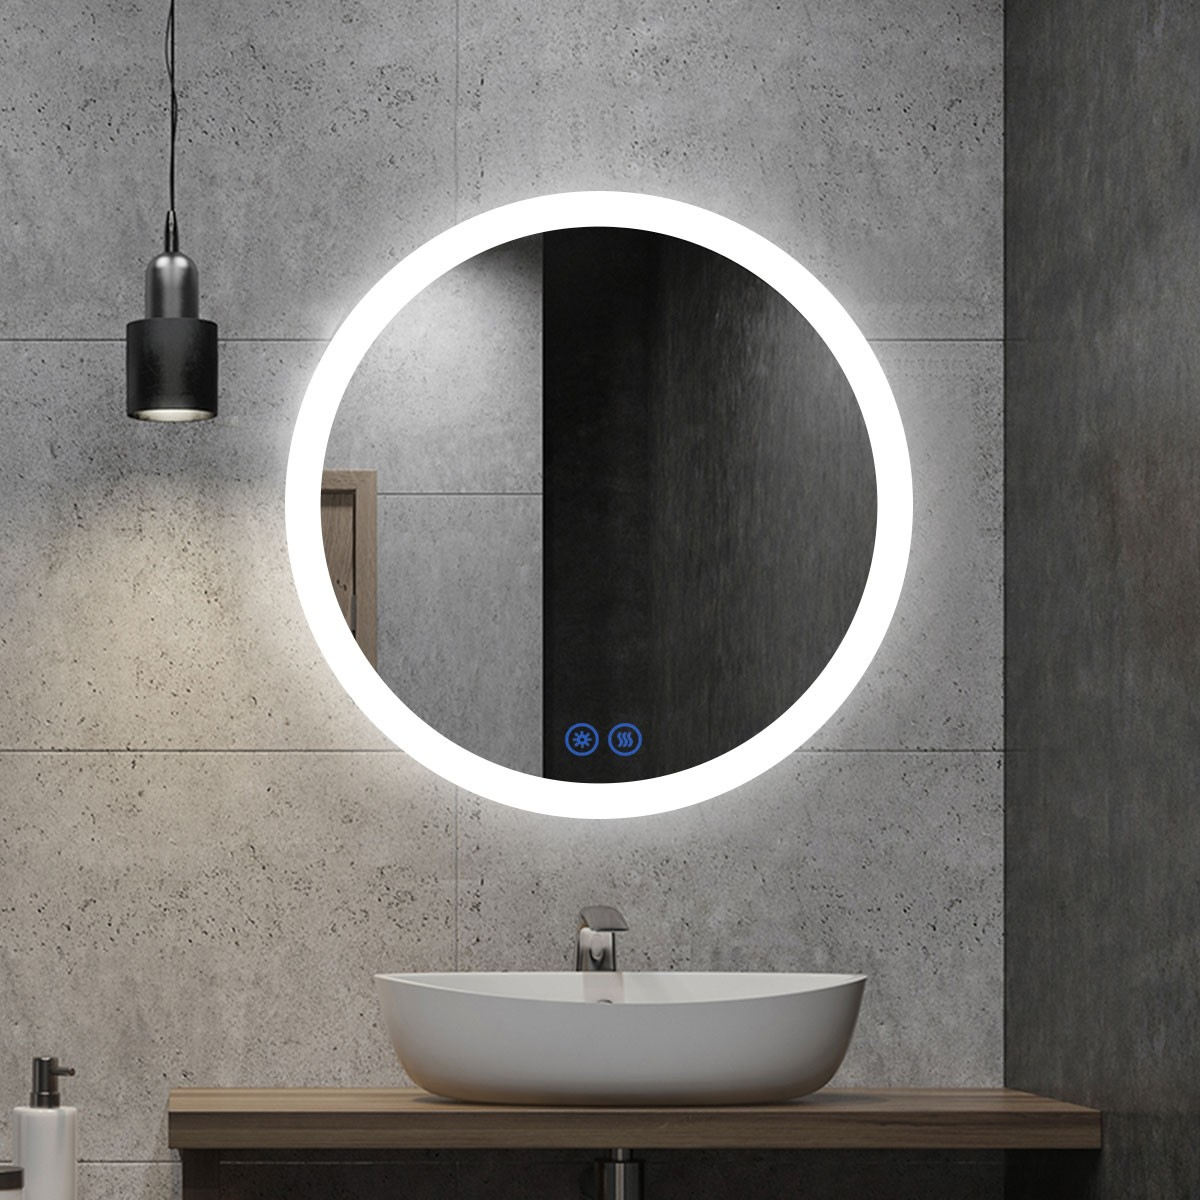 DECORAPORT 32 x 32 Inch LED Bathroom Mirror/Dress Mirror with Touch Button, Anti Fog, Dimmable, Vertical Mount (CL065-3232-TS)